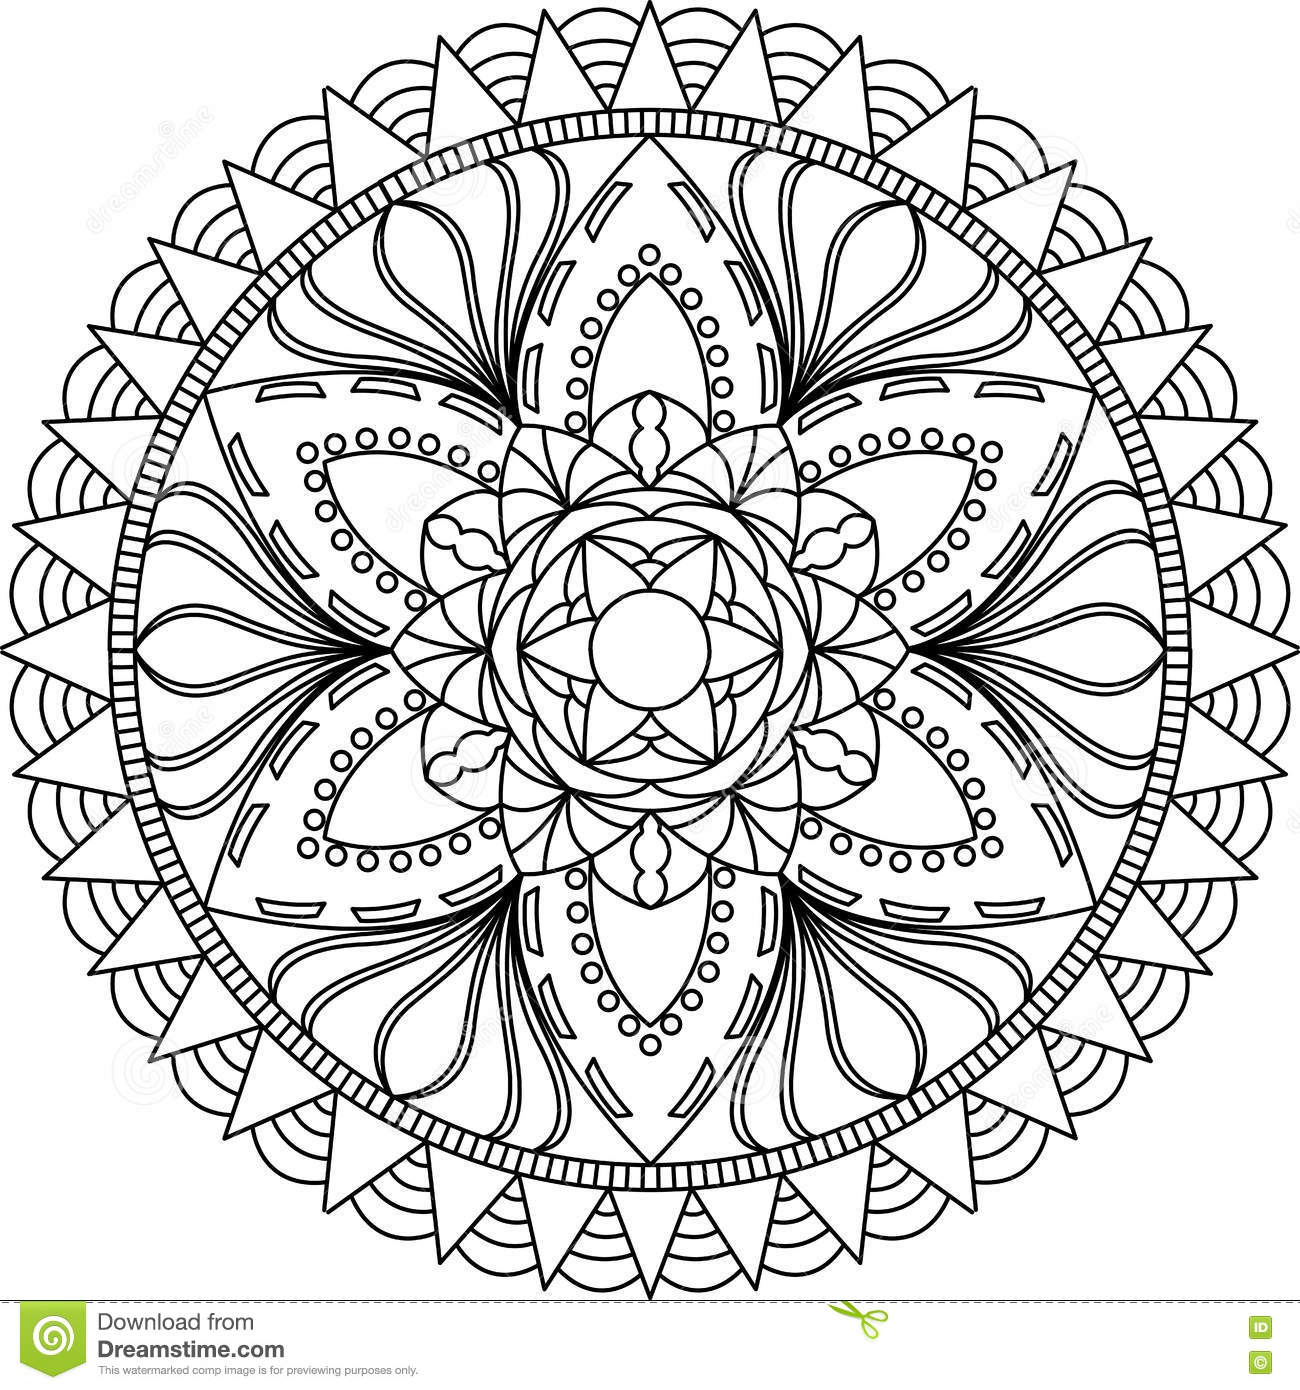 Adult Coloring Page, Mandala. Stock Vector - Illustration of ...